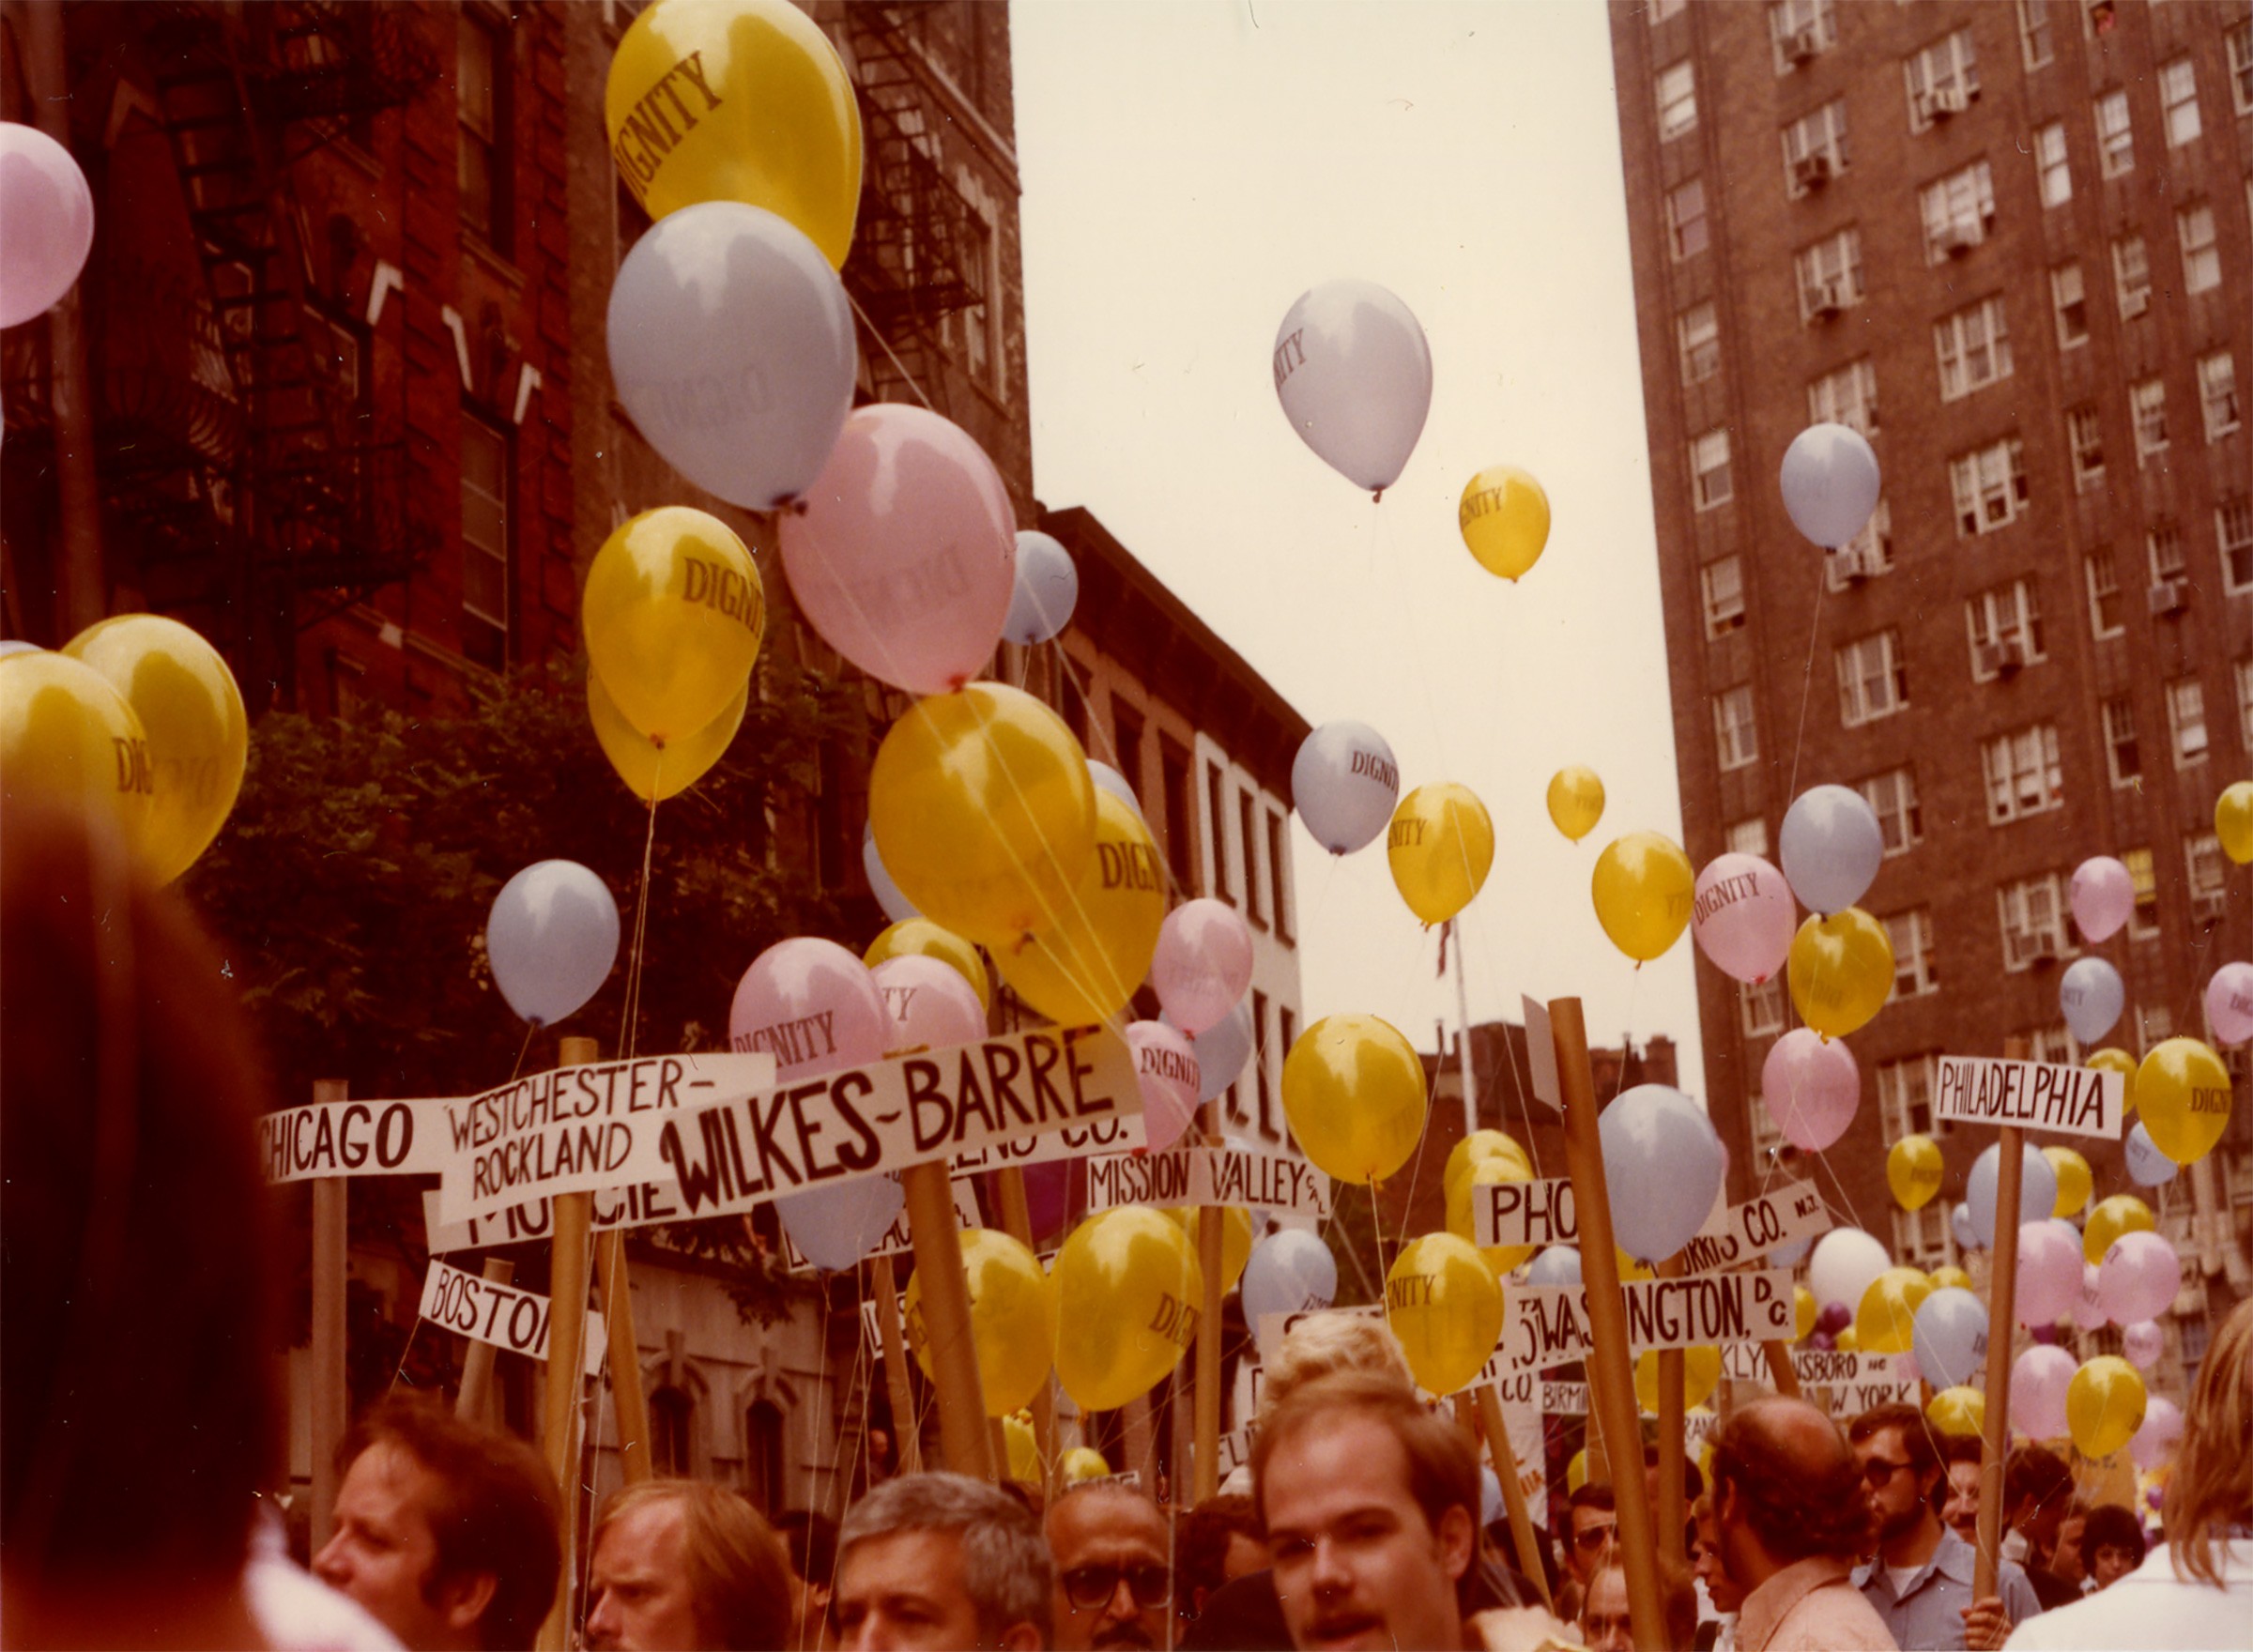 People march with balloons saying DIGNITY and picket signs that indicate place of origin, 1980